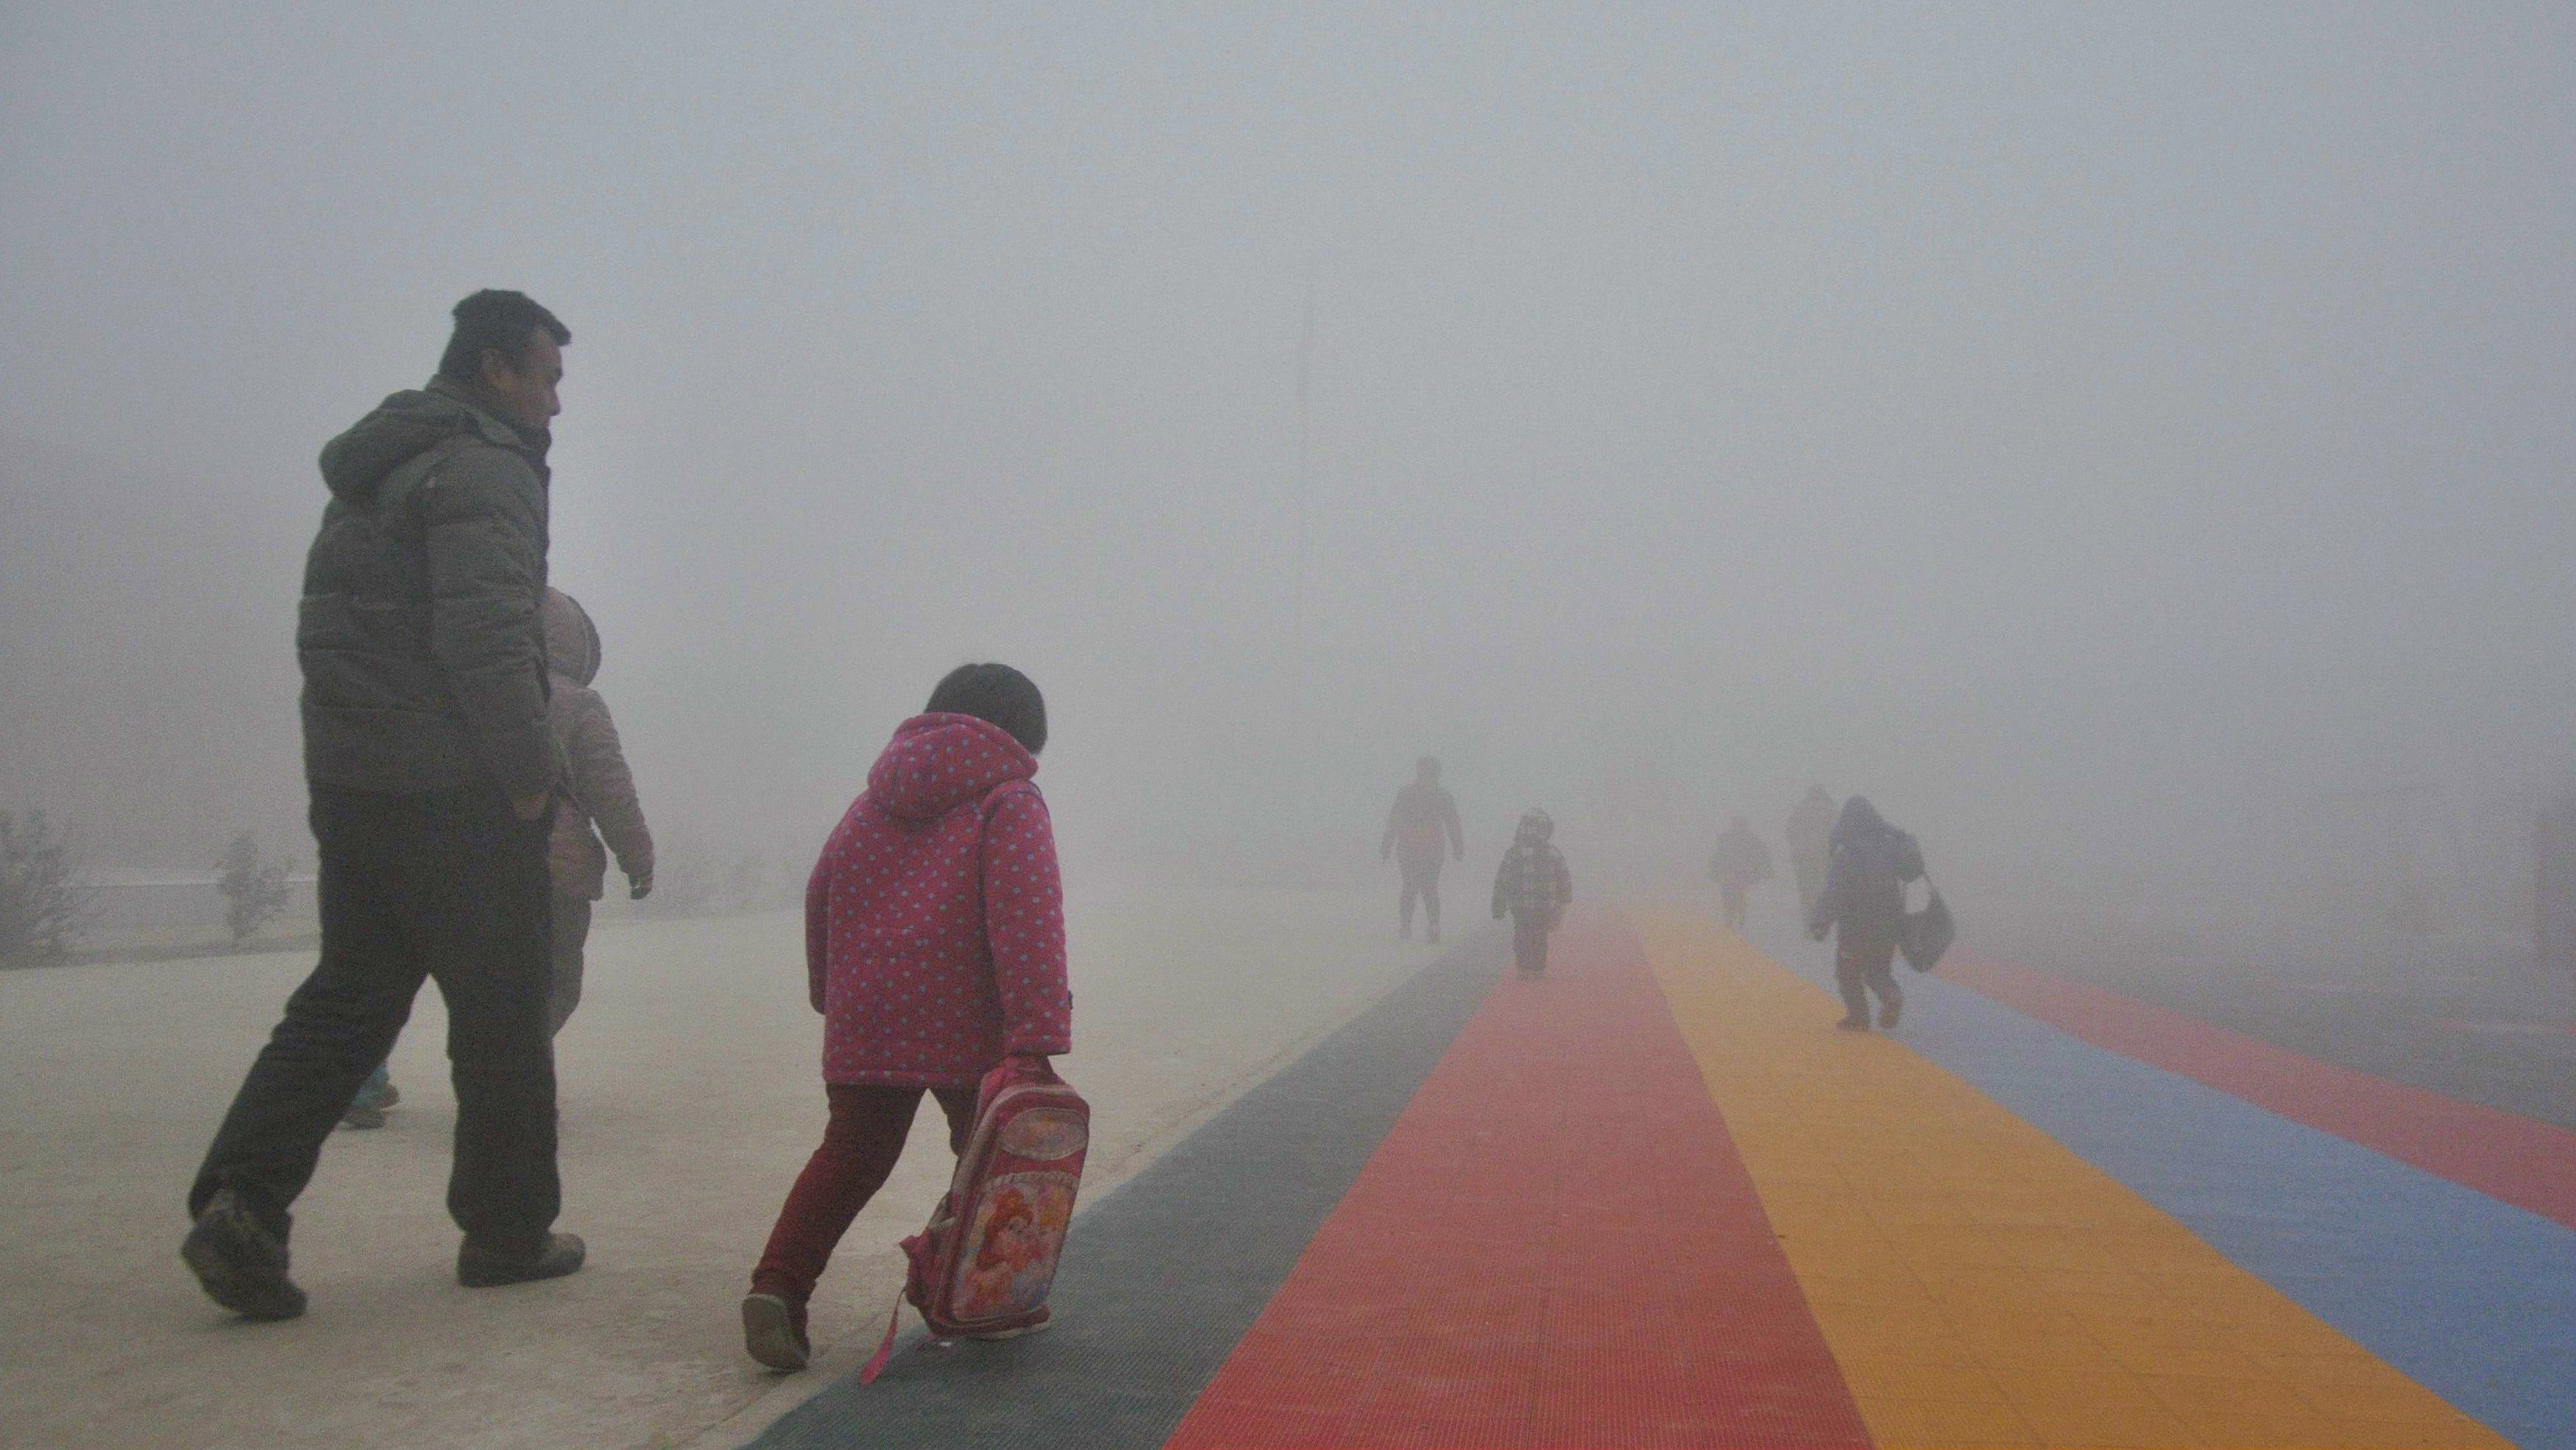 Parents walk primary school students to school amid thick haze in Chiping county, Shandong province January 16, 2015